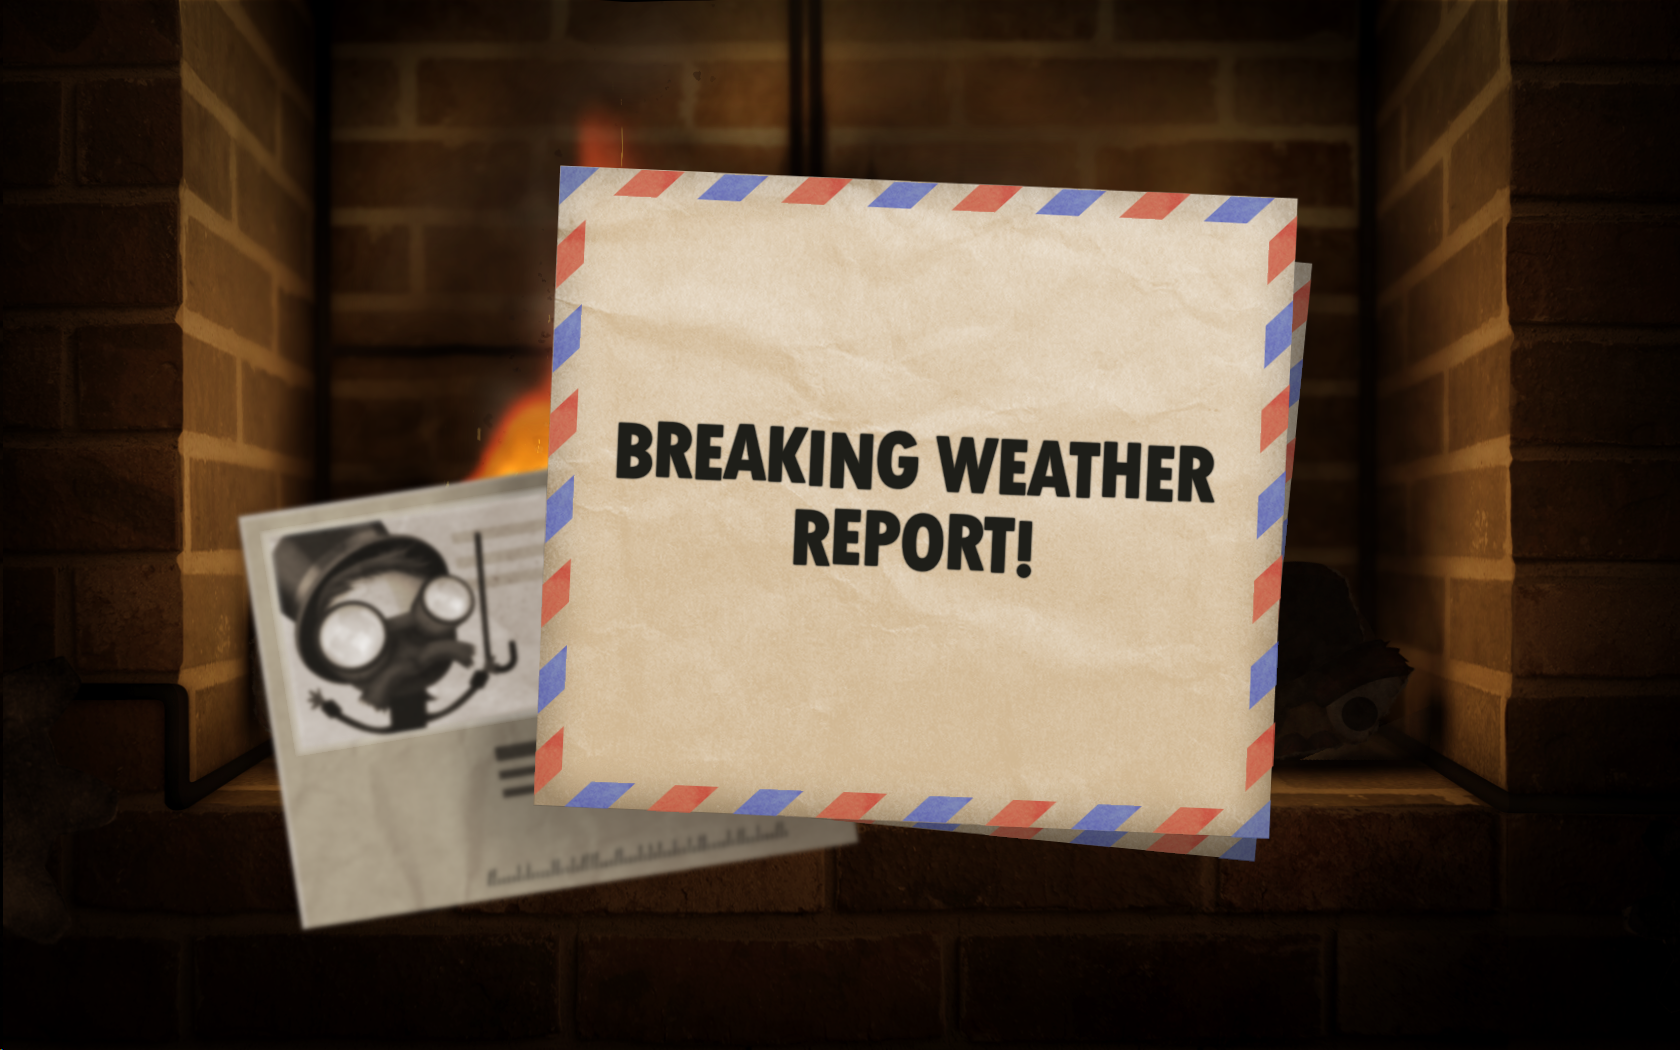 BREAKING WEATHER REPORT